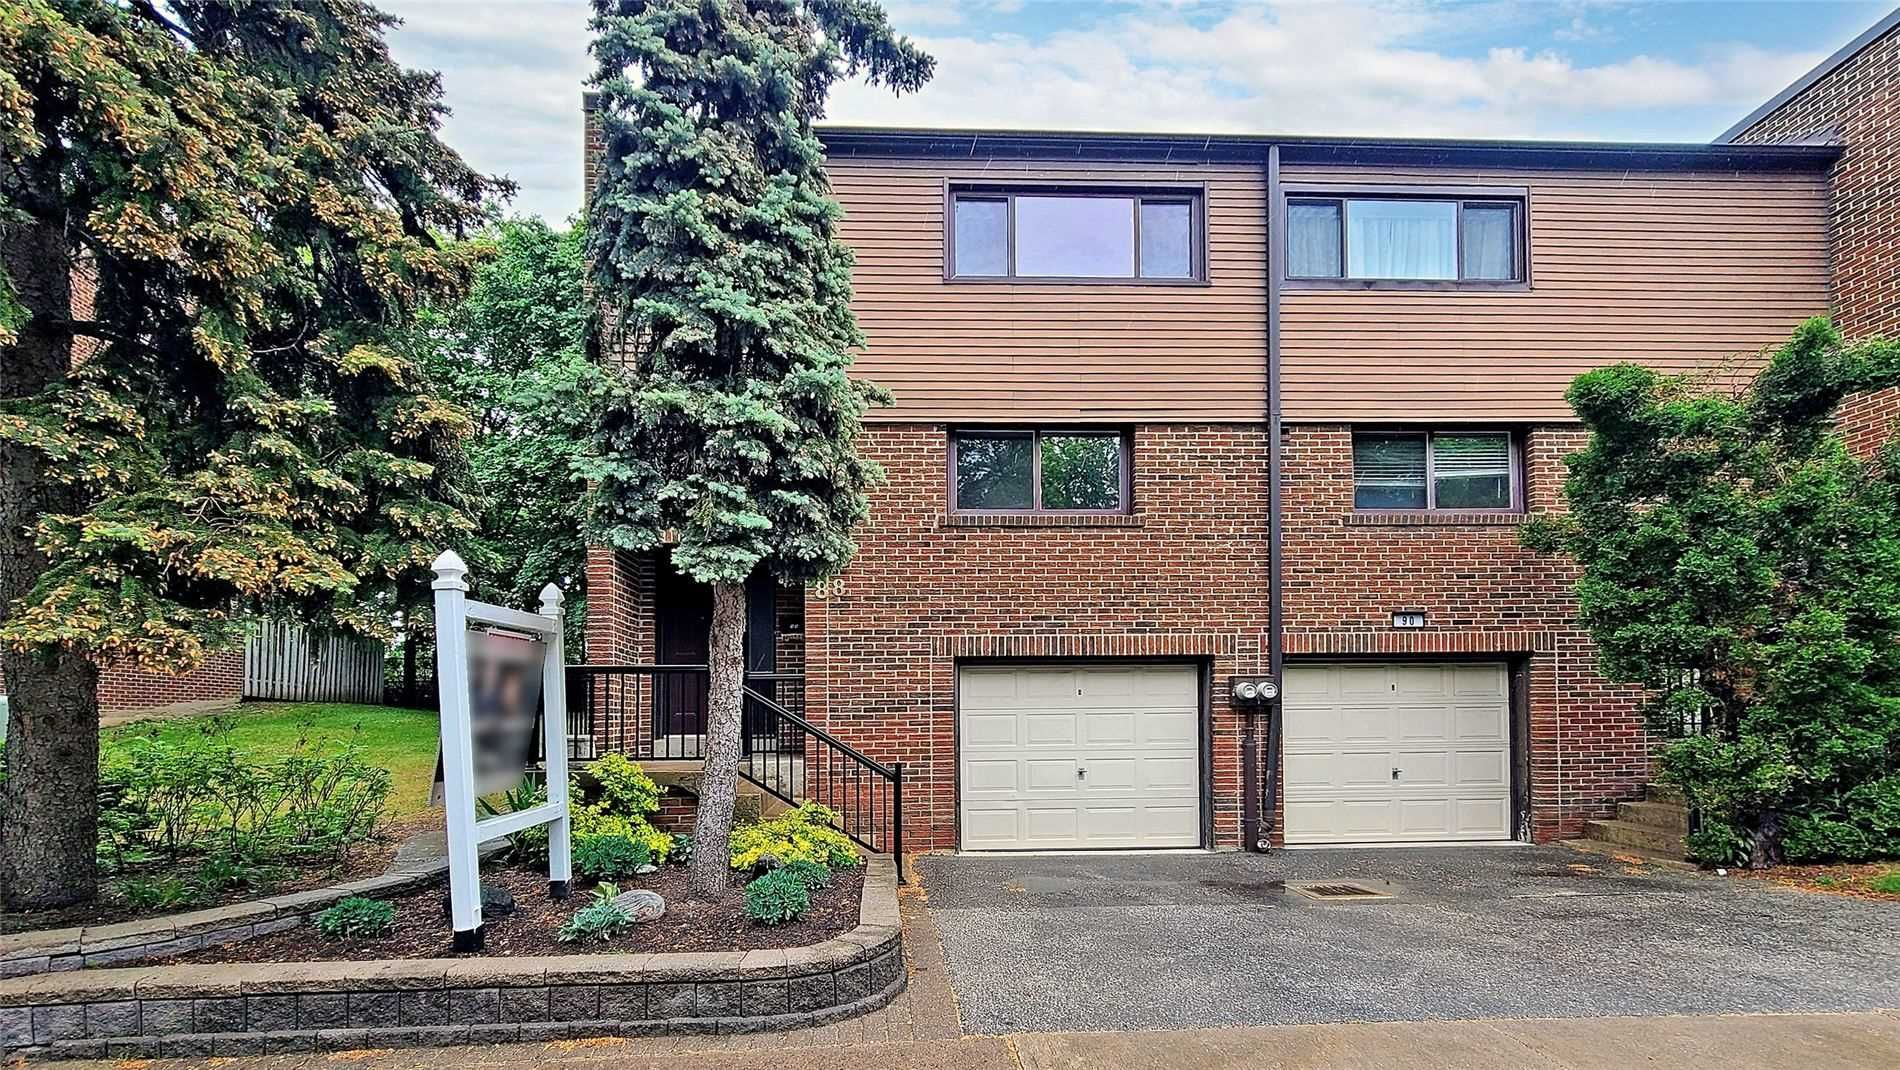 Main Photo: 88 Song Meadoway in Toronto: Hillcrest Village Condo for sale (Toronto C15)  : MLS®# C5253458